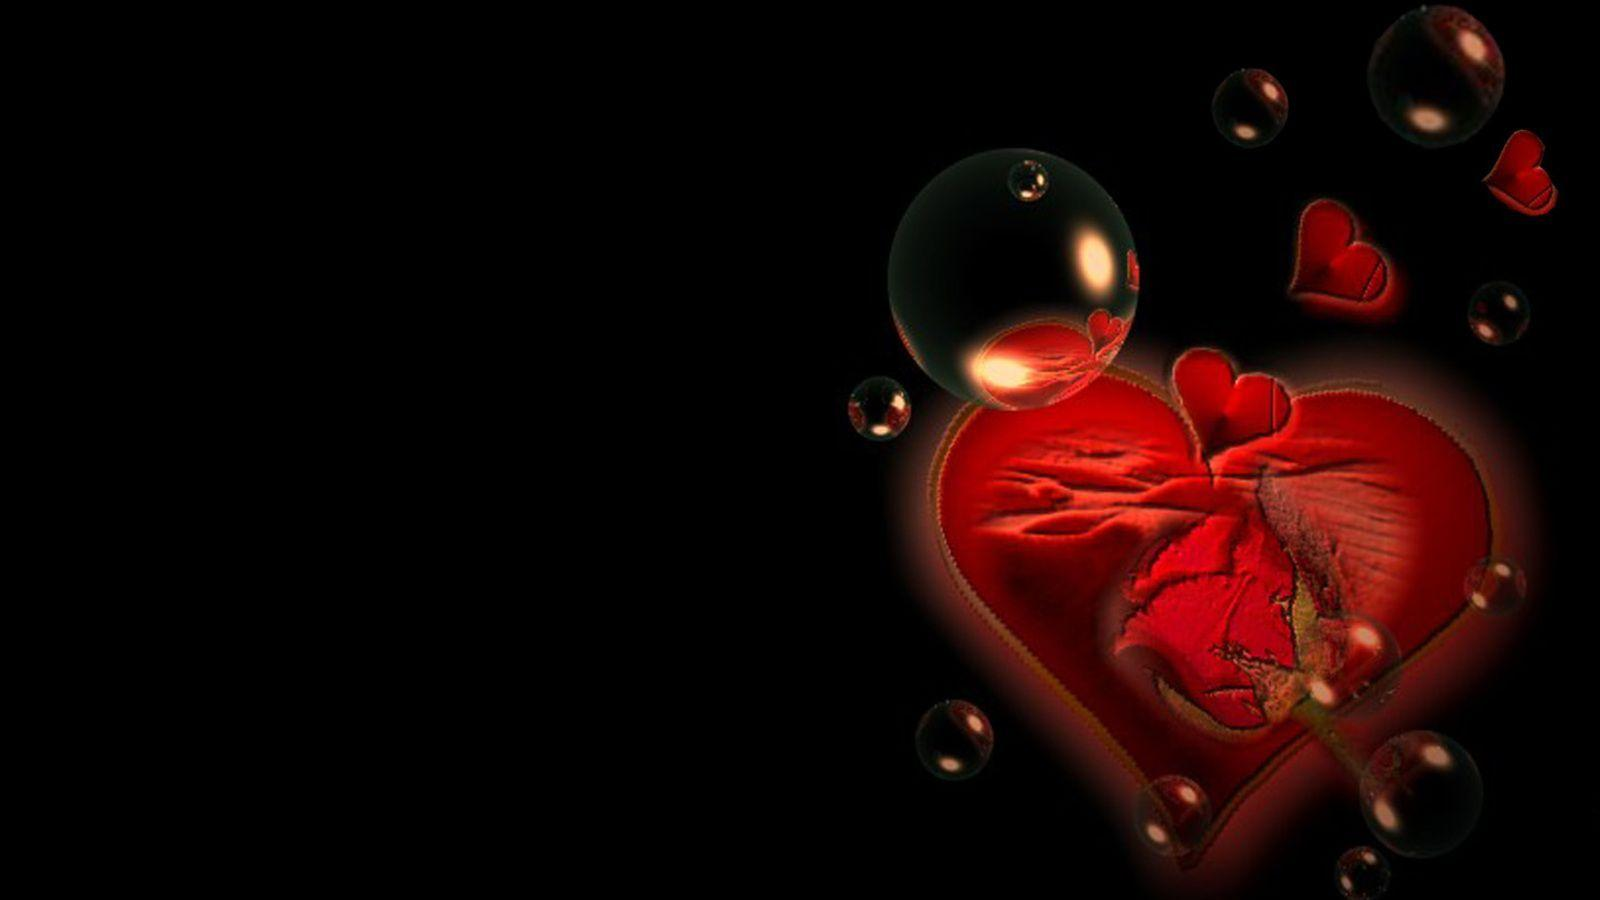 Wallpaper Love You 3d : Love 3D Wallpapers - Wallpaper cave